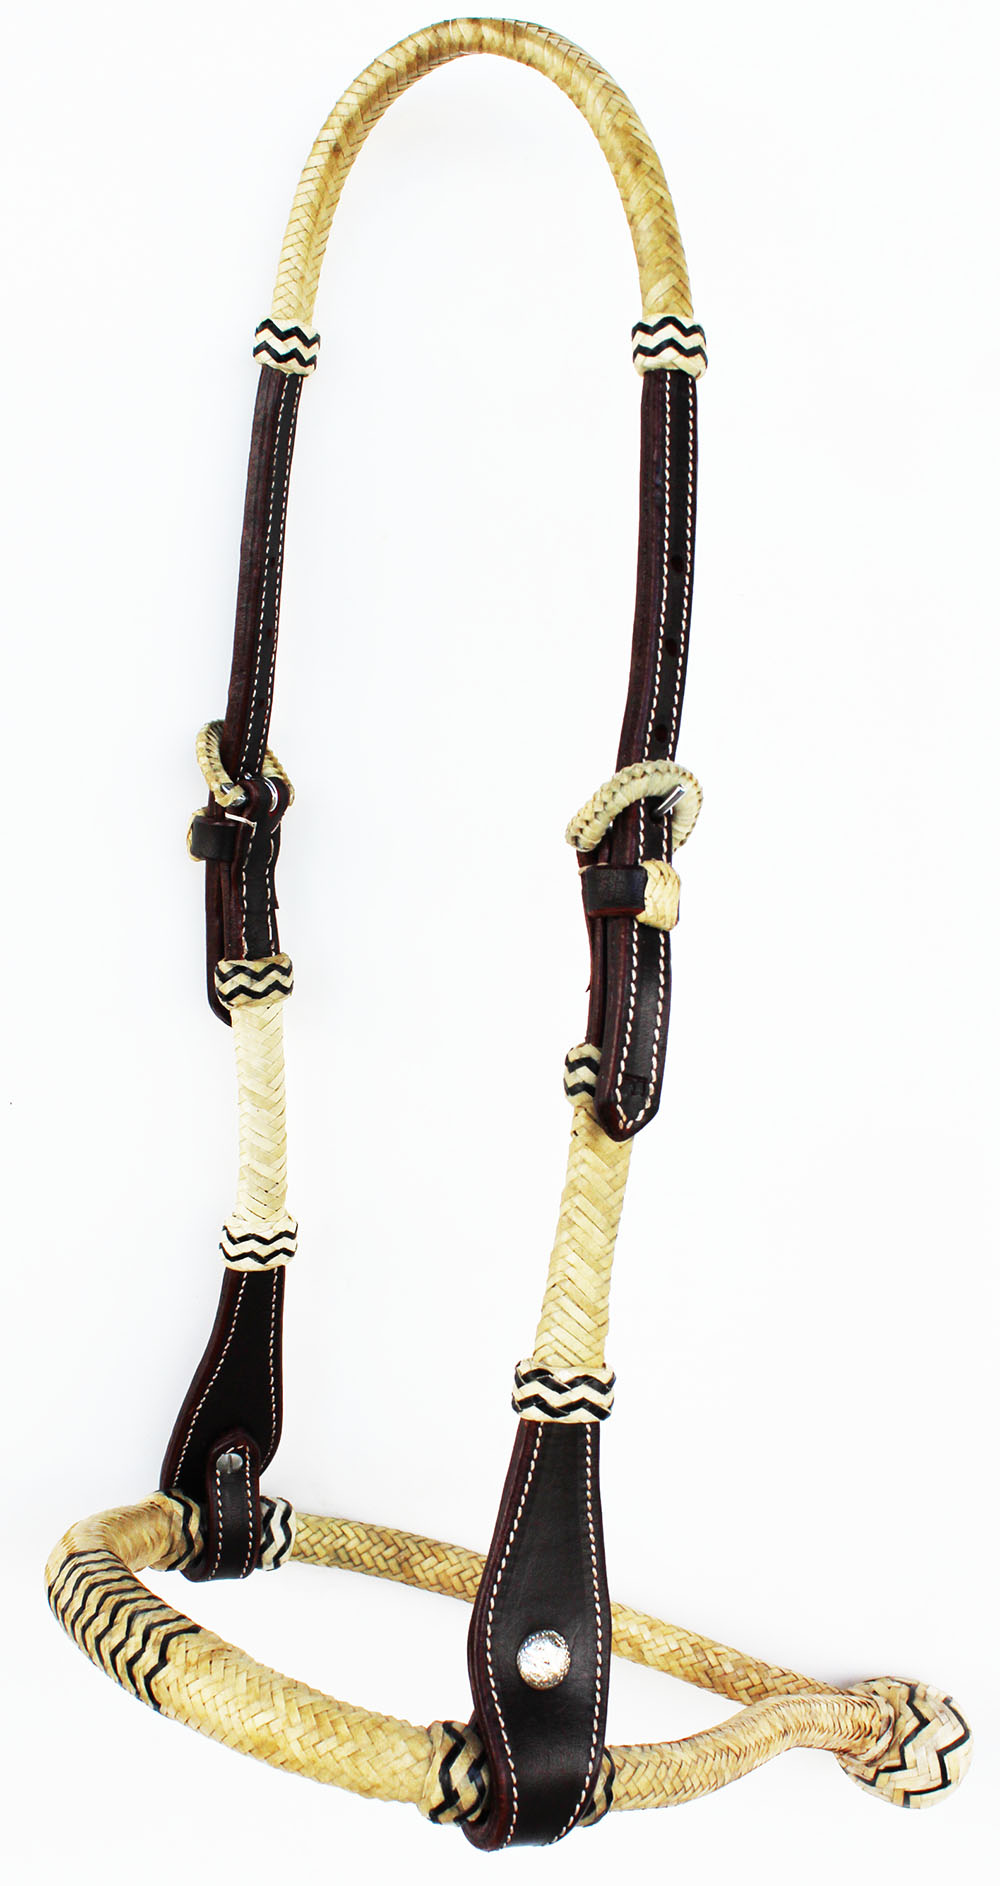 Rawhide Bosal for Miniature has Rawhide Core Natural with Black by Royal King